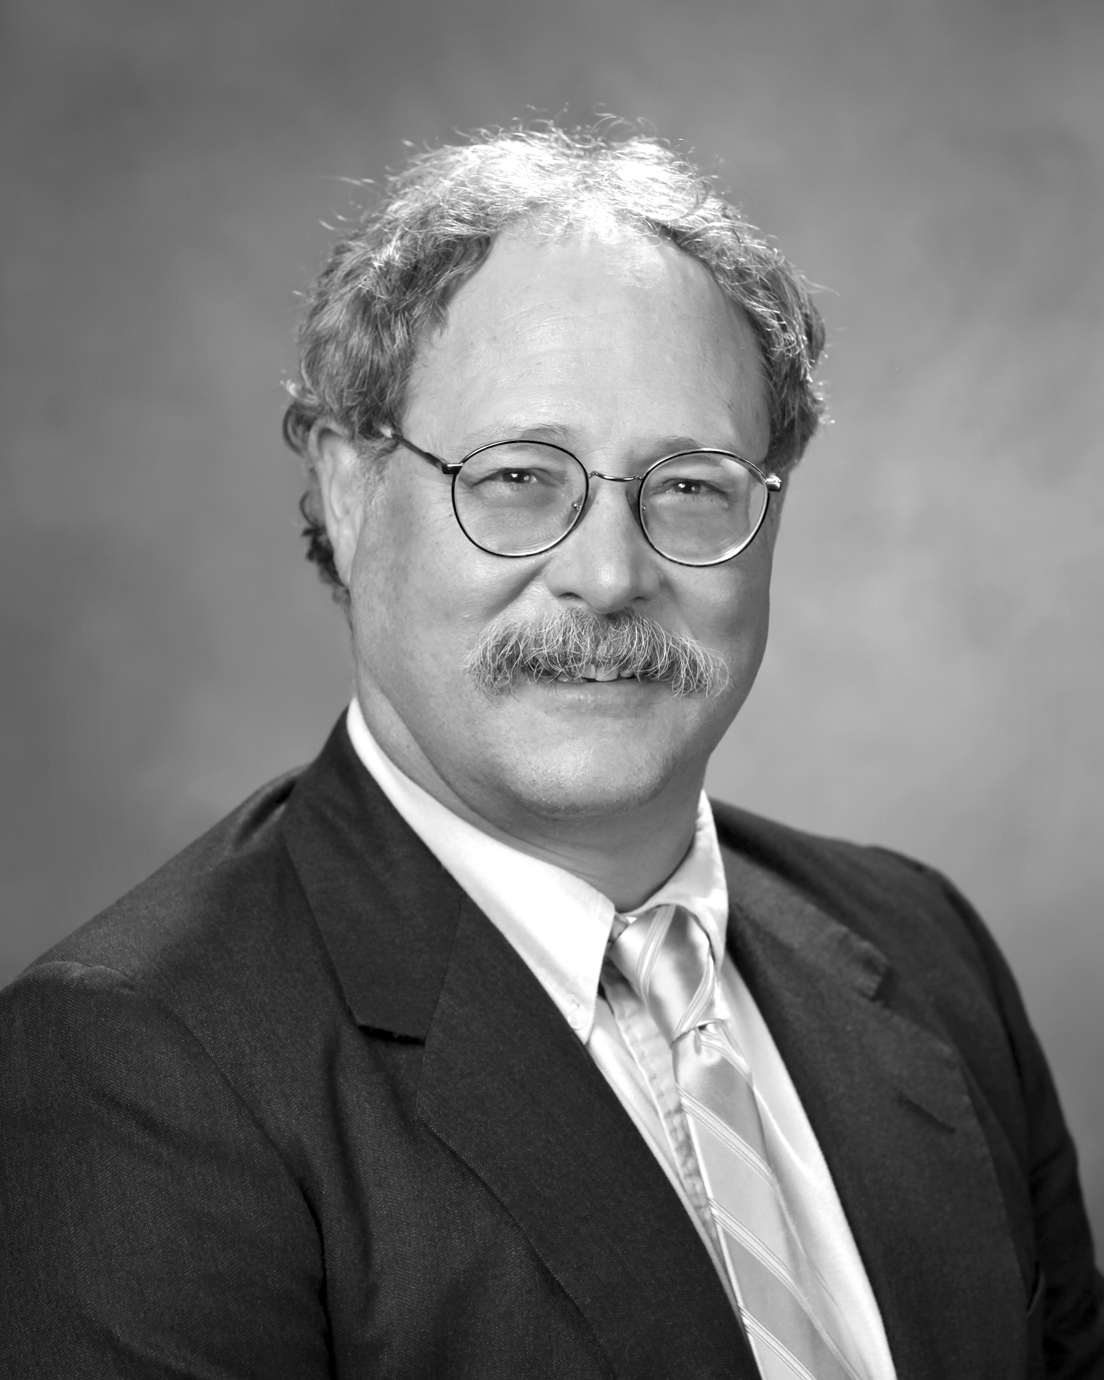 Michael S Muhlbauer, MD